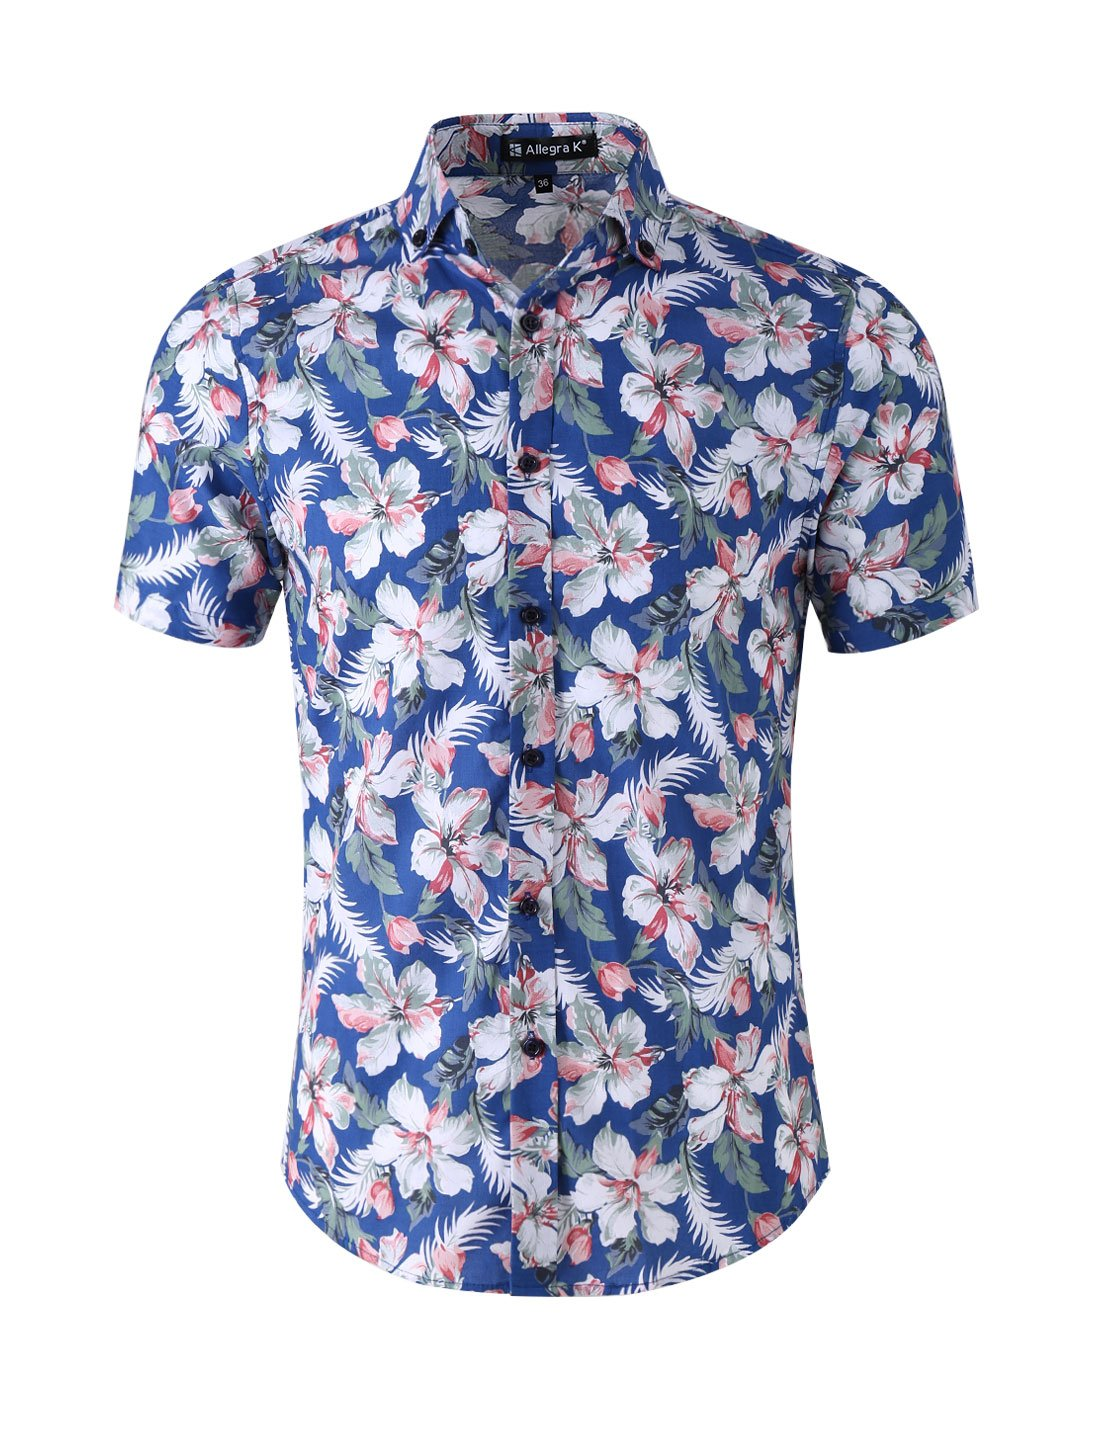 uxcell Men Summer Floral Print Slim Fit Short Sleeve Button Down Hawaiian Shirt XLarge Blue